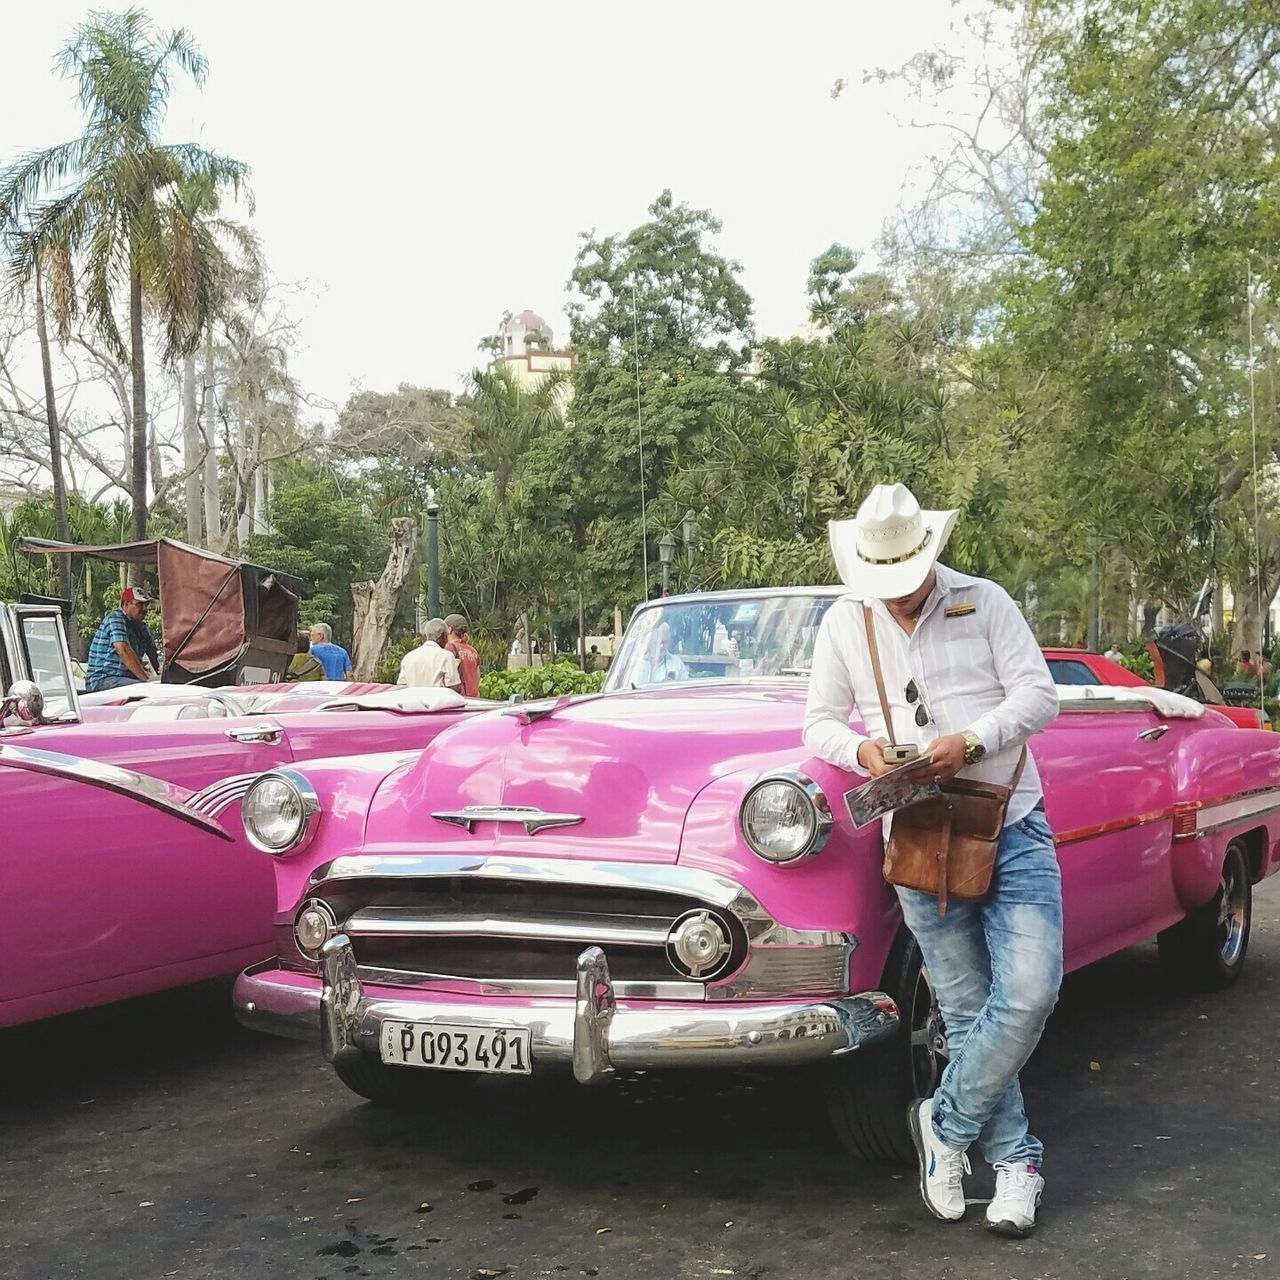 Cuba Car Transportation Old-fashioned Lifestyles Living In The Moment Beauty In Nature Fotogeniksyl Vintage❤ Classic Cuban Style Traveling Photography Streets Of Cuba Mode Of Transport People Portrait Pink Cuba Havana, Cuba Mature Adult The City Light